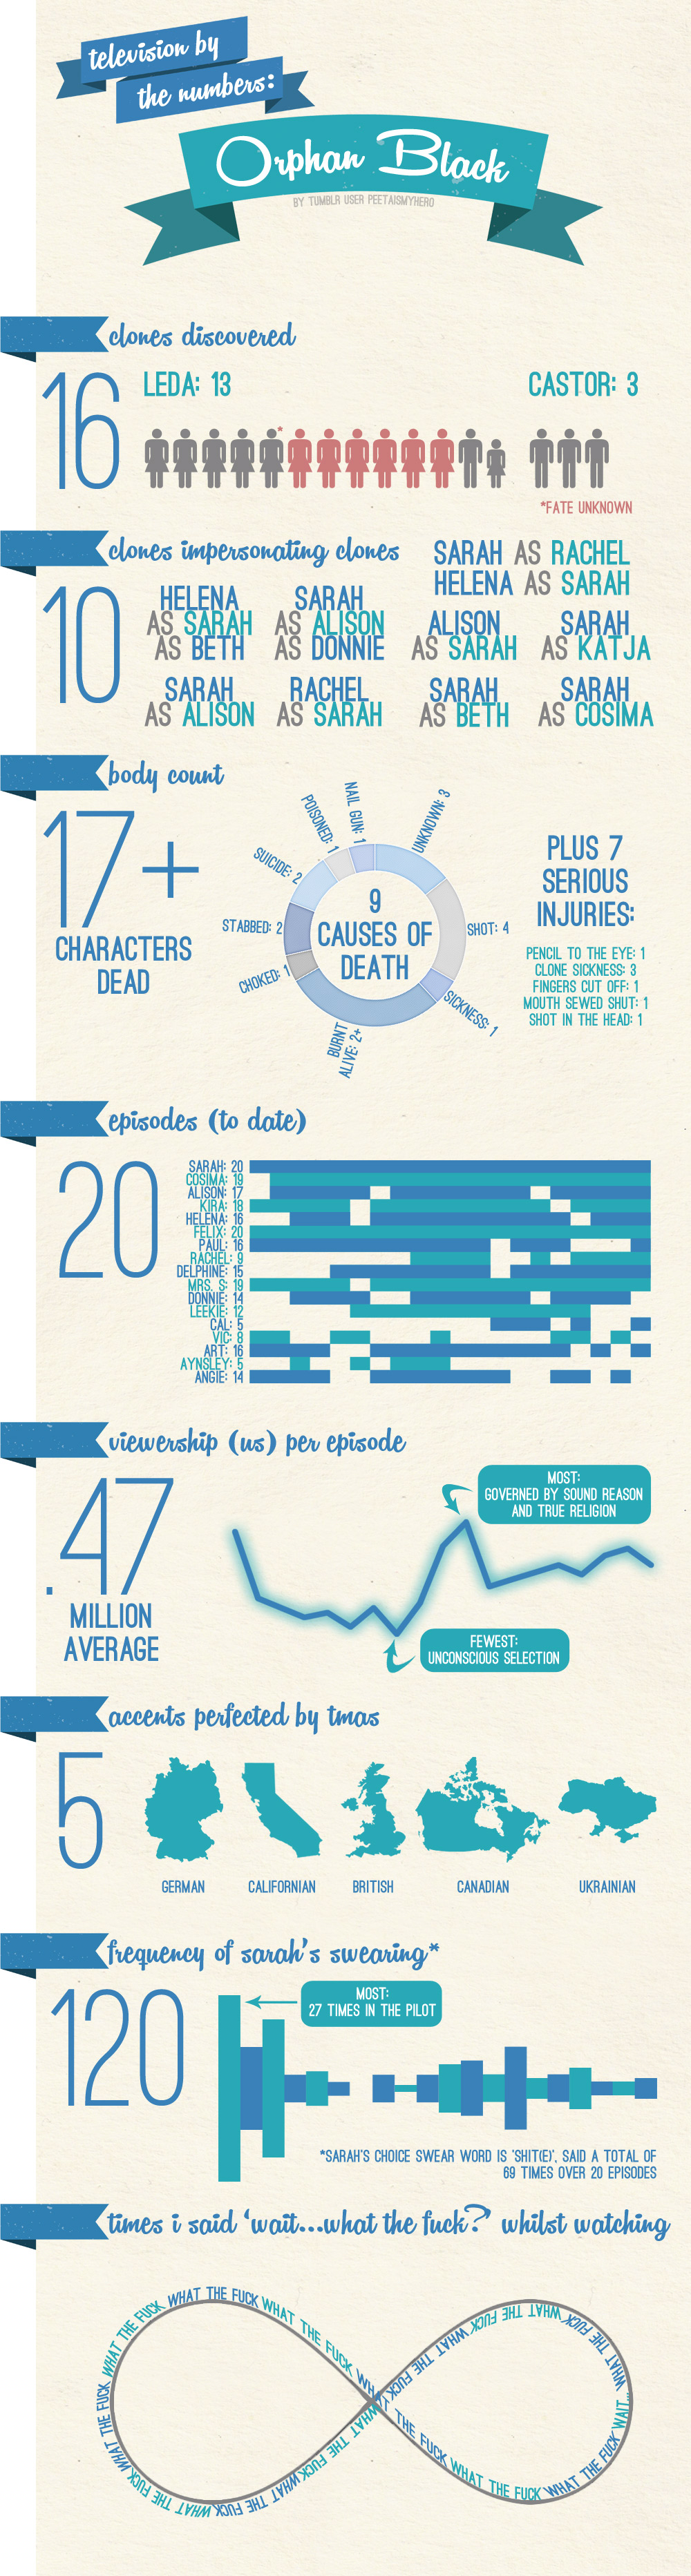 orphan_black_by_the_numbers_infographic